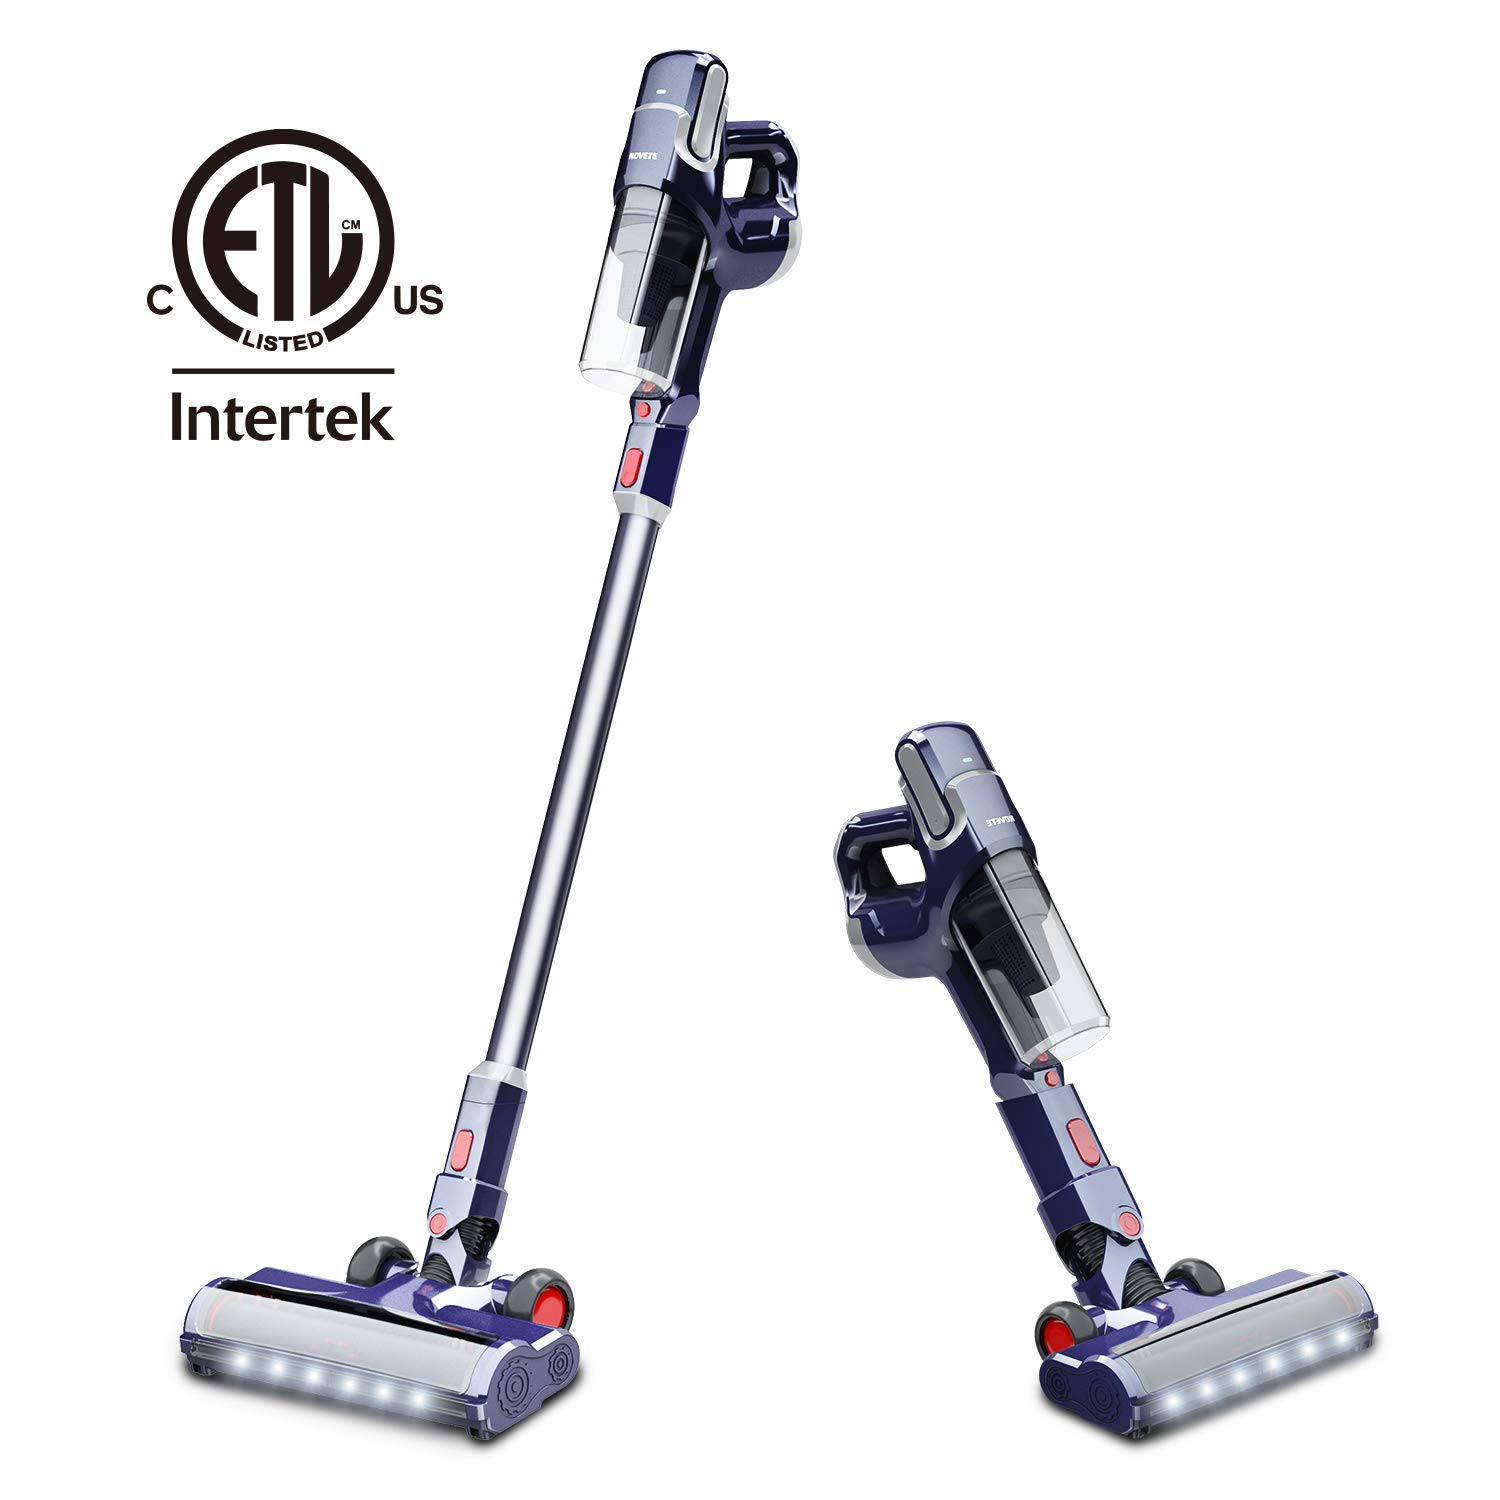 NOVETE Cordless Vacuum Cleaner, 2 in 1 Stick Vacuum with Samsung Detachable Lithium Battery,  Lightweight Bagless Handheld Vacuum for Floor Carpet Car Pet Hair, LED Cleaning Head and Wall Mount